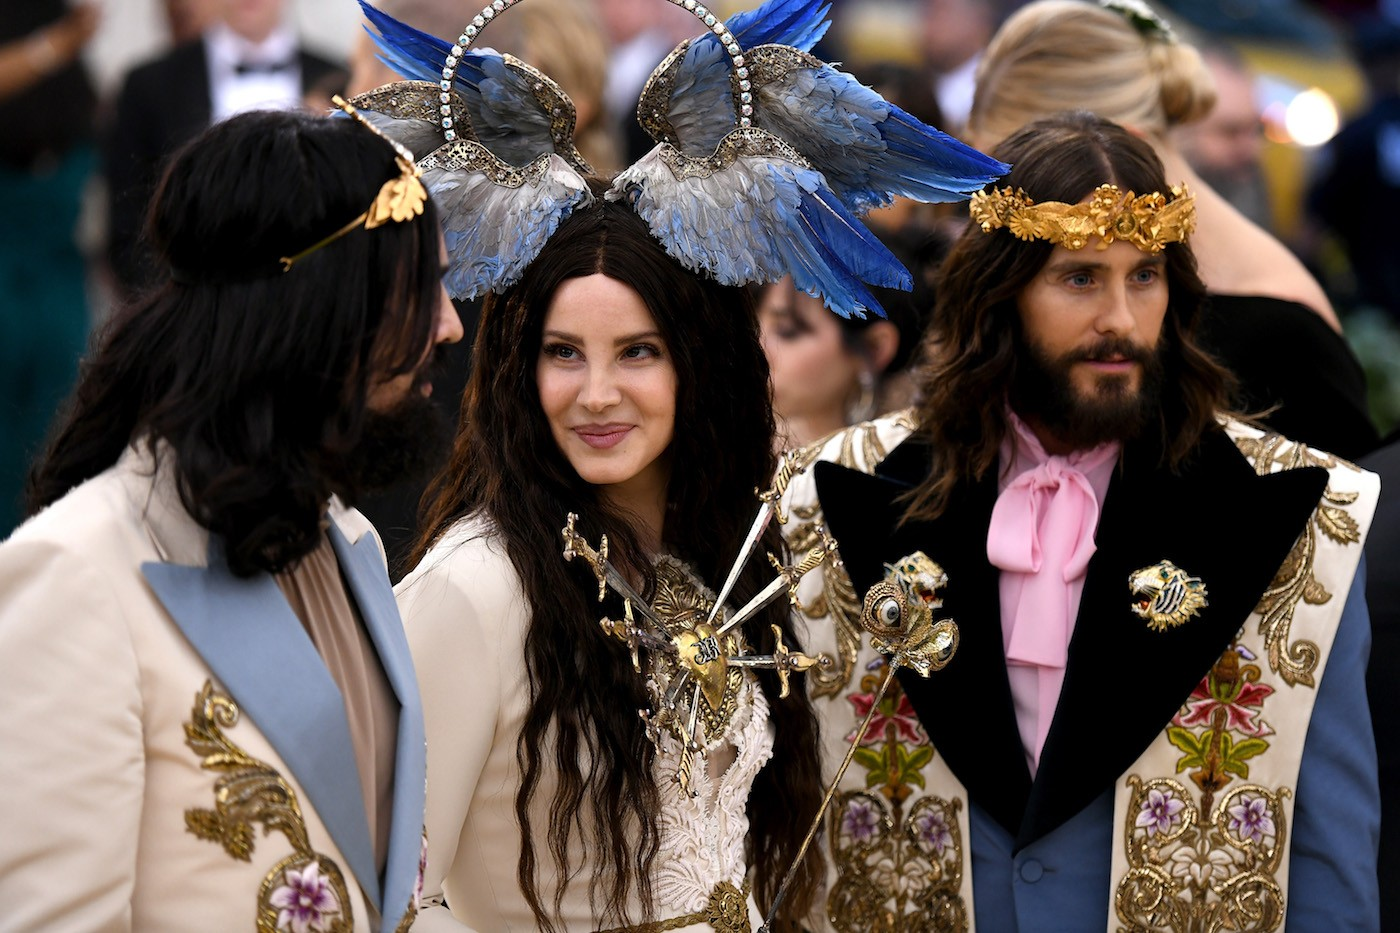 Lana Del Rey And Jared Leto Are The New Faces Of Gucci Perfume